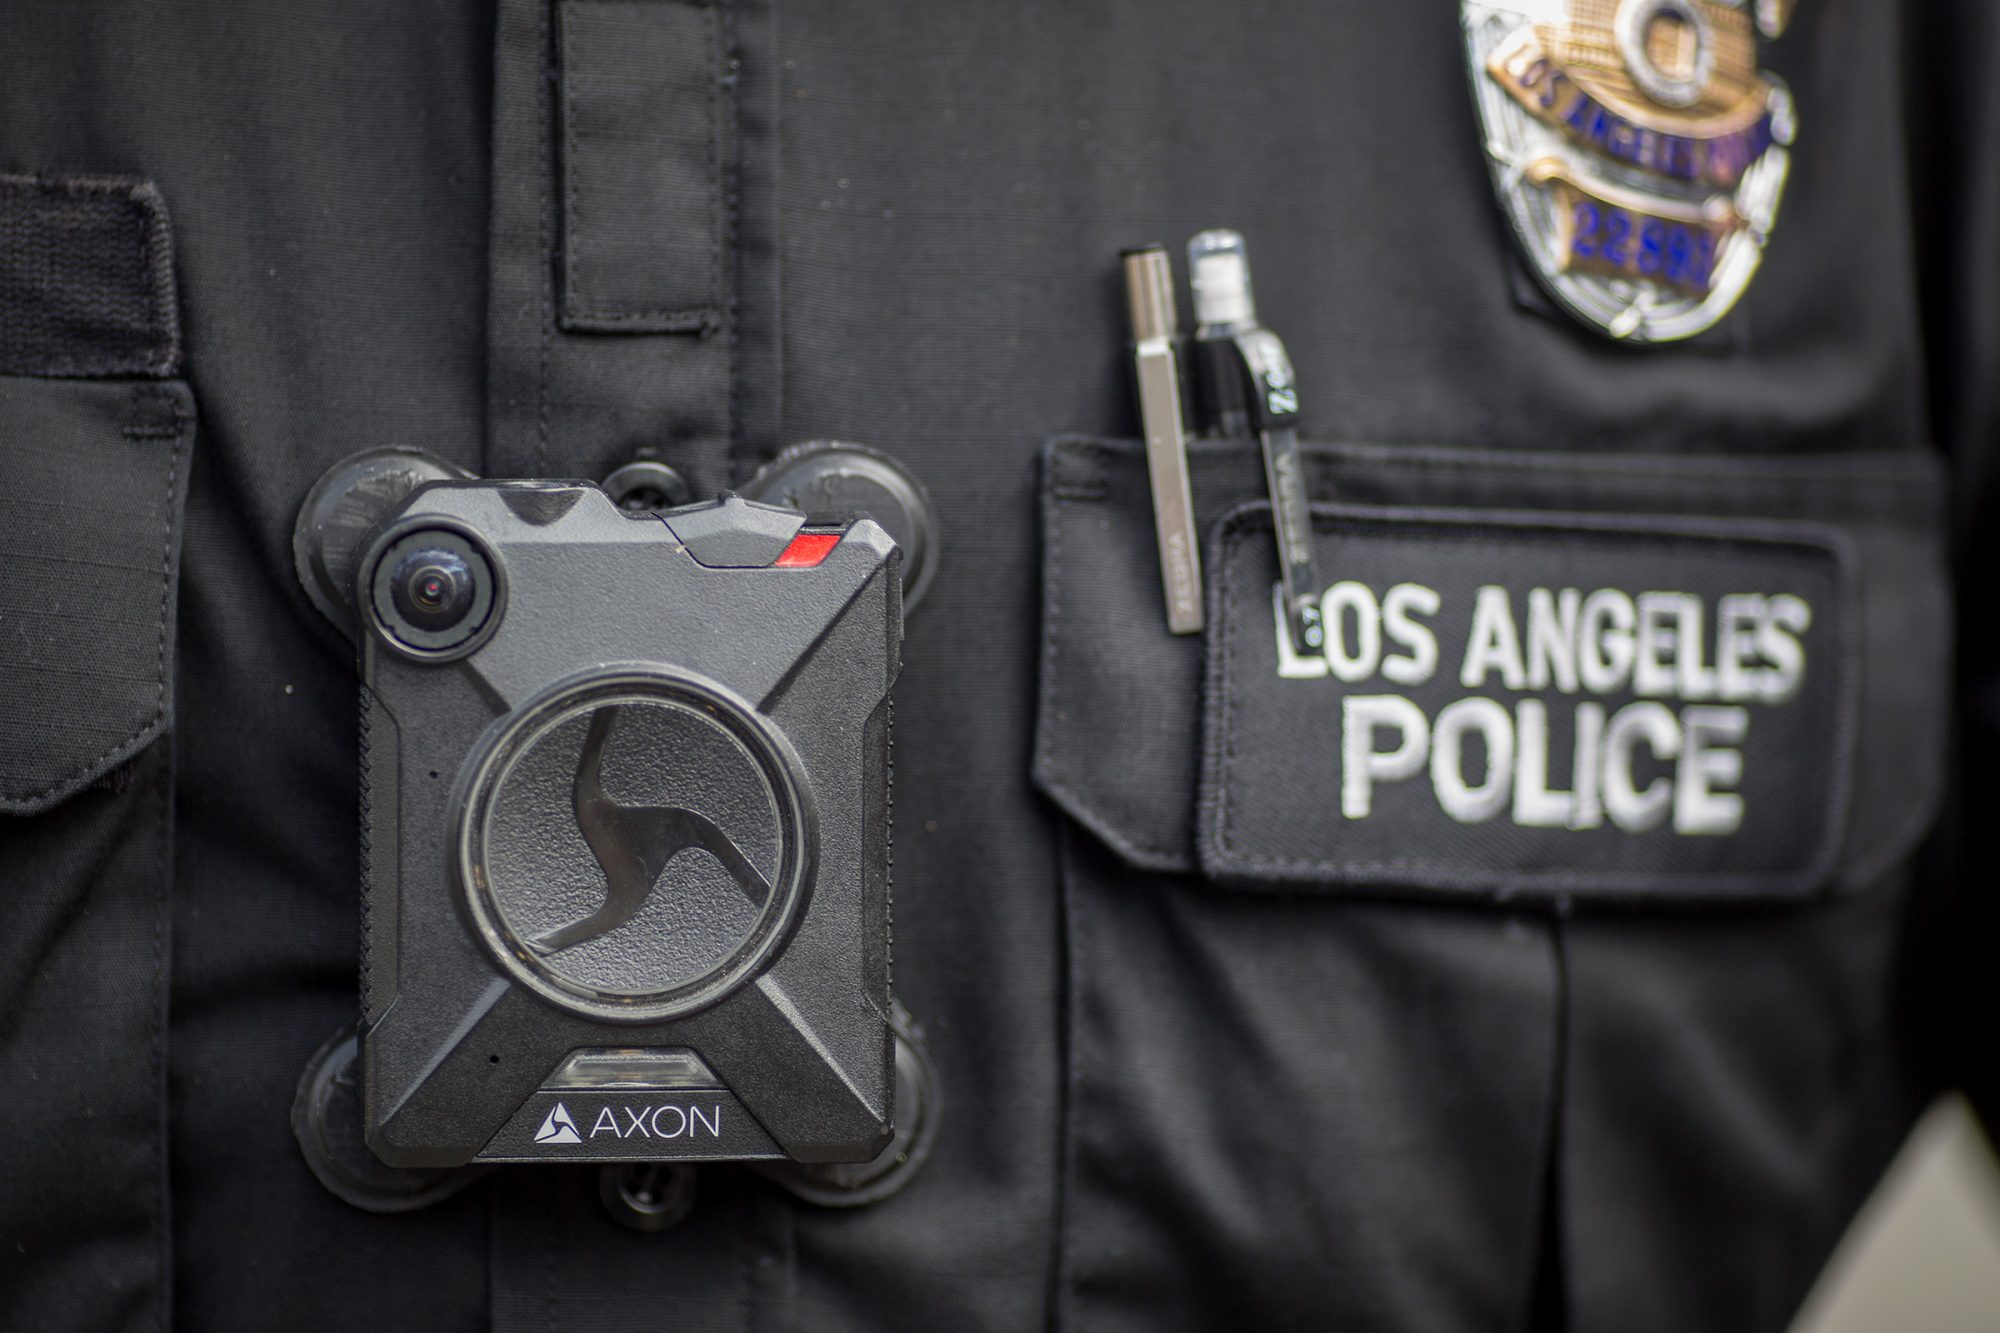 A Los Angeles police officer wear an AXON body camera during the Immigrants Make America Great March to protest actions being taken by the Trump administration on February 18, 2017 in Los Angeles, California. Protesters are calling for an end to stepped up ICE raids and deportations, and that health care be provided for documented and undocumented people.